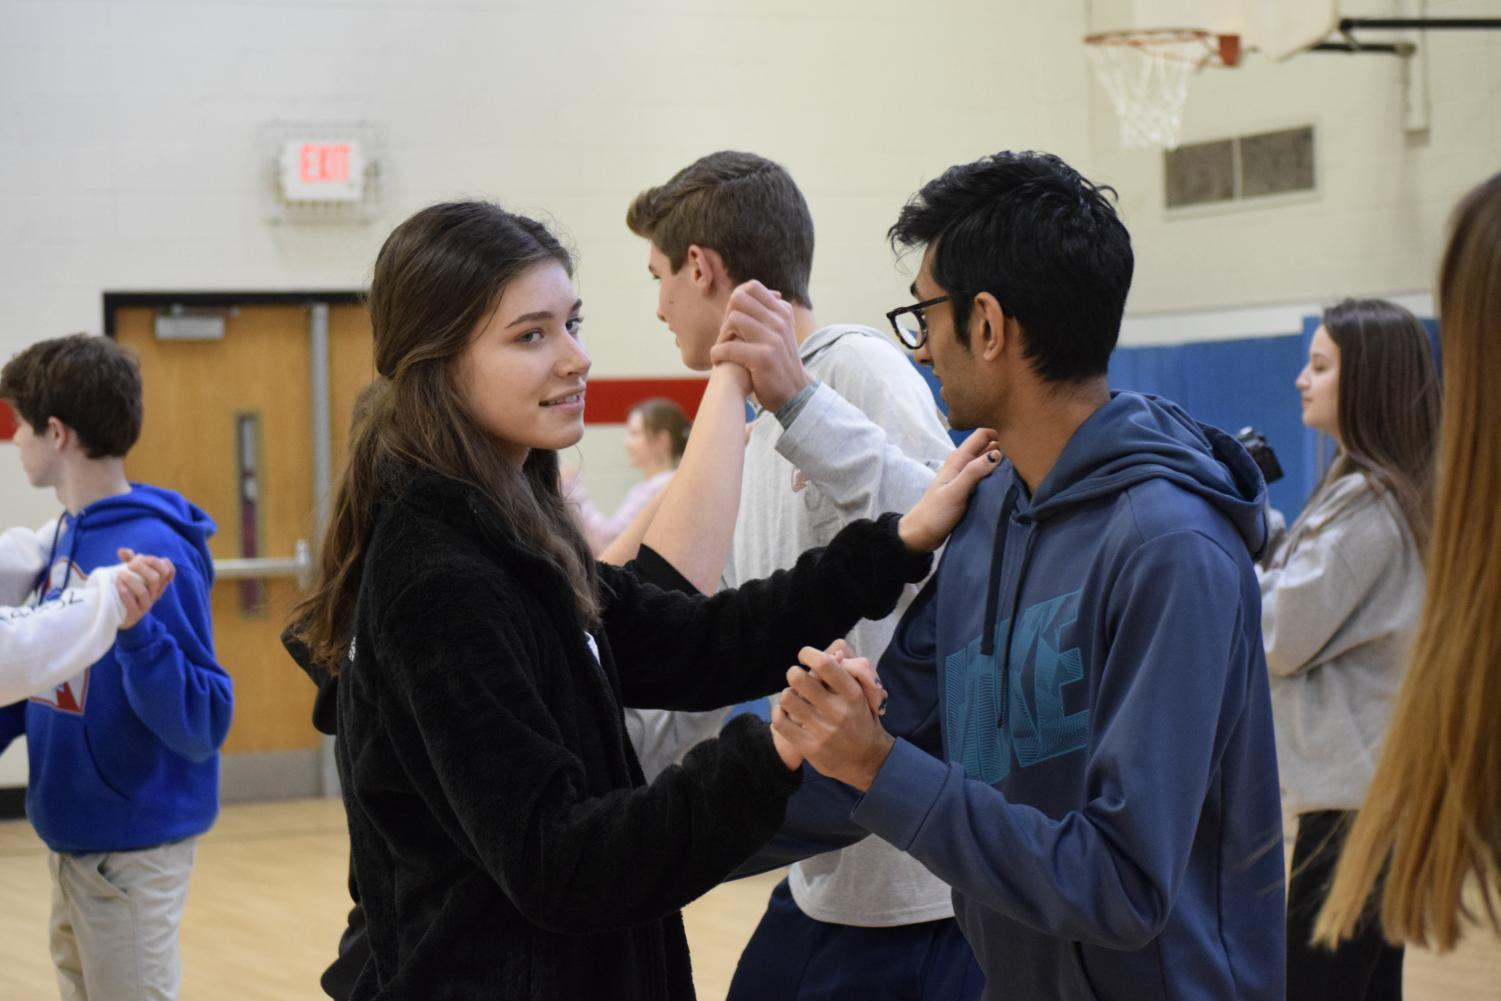 Sophomores Brooke Taeckens and Nikhil Deshmukh salsa dancing for a Spanish 3 activity.